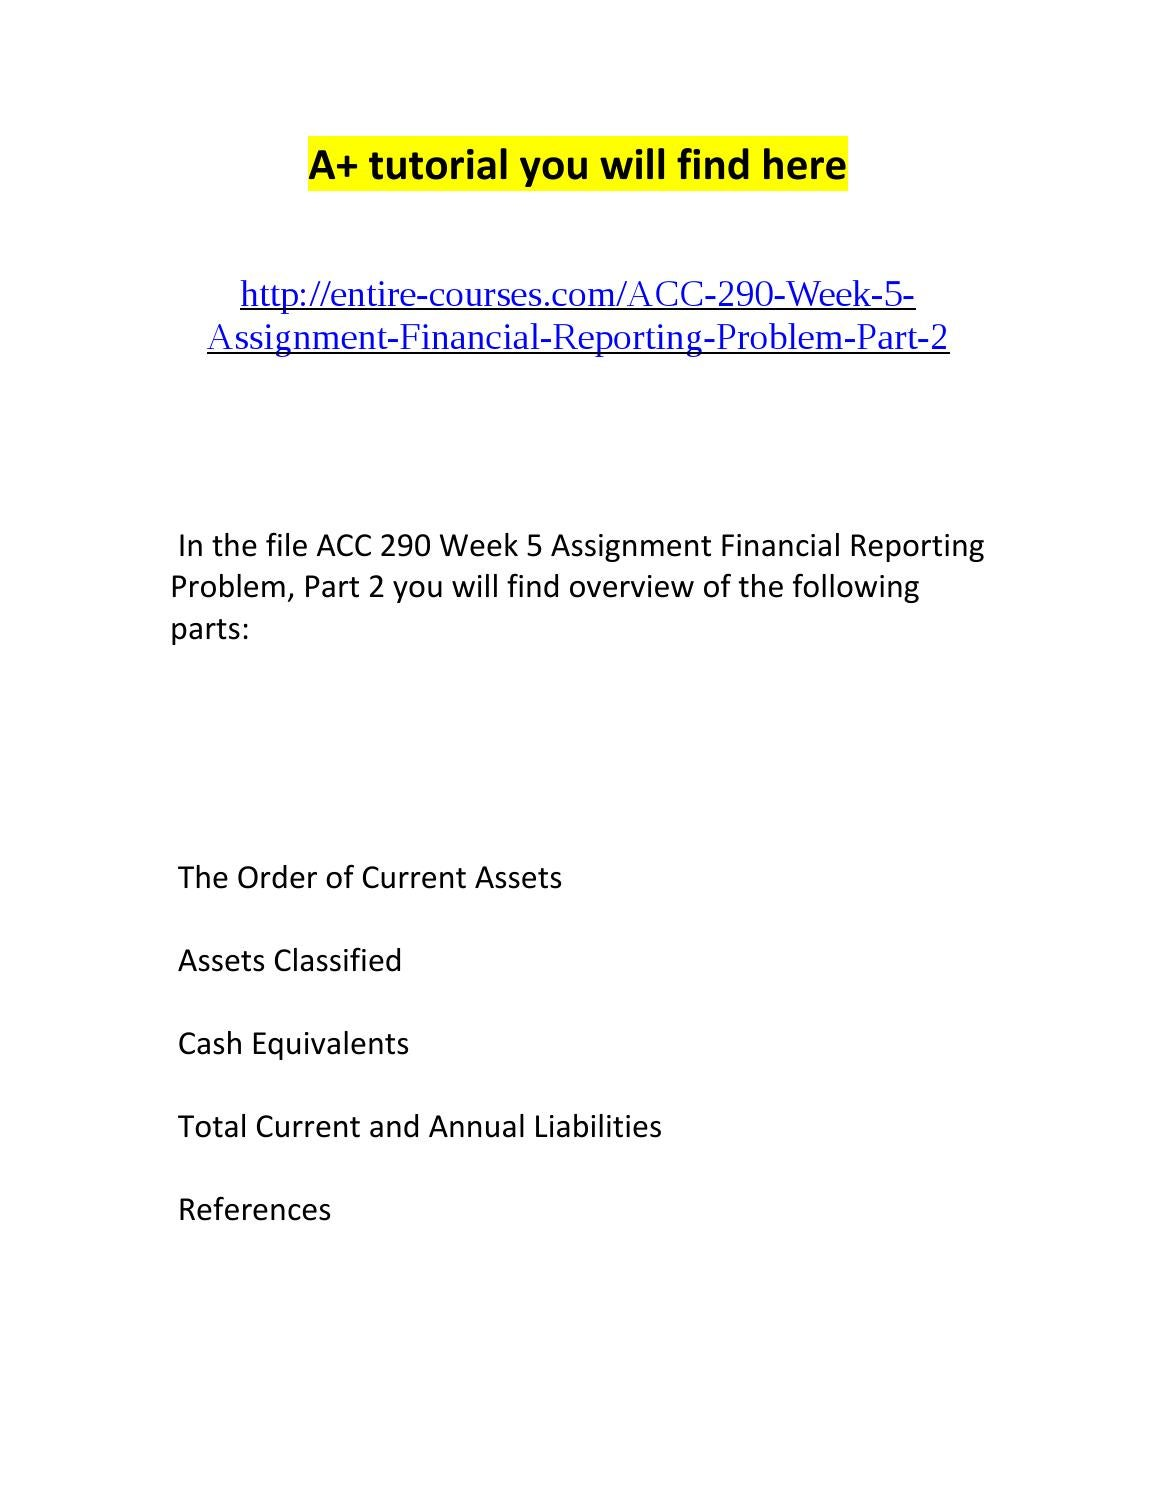 financial reporting problem View homework help - financial reporting problem ii from acc 291 at university of phoenix purpose of assignment the purpose of this assignment is to expose you to.